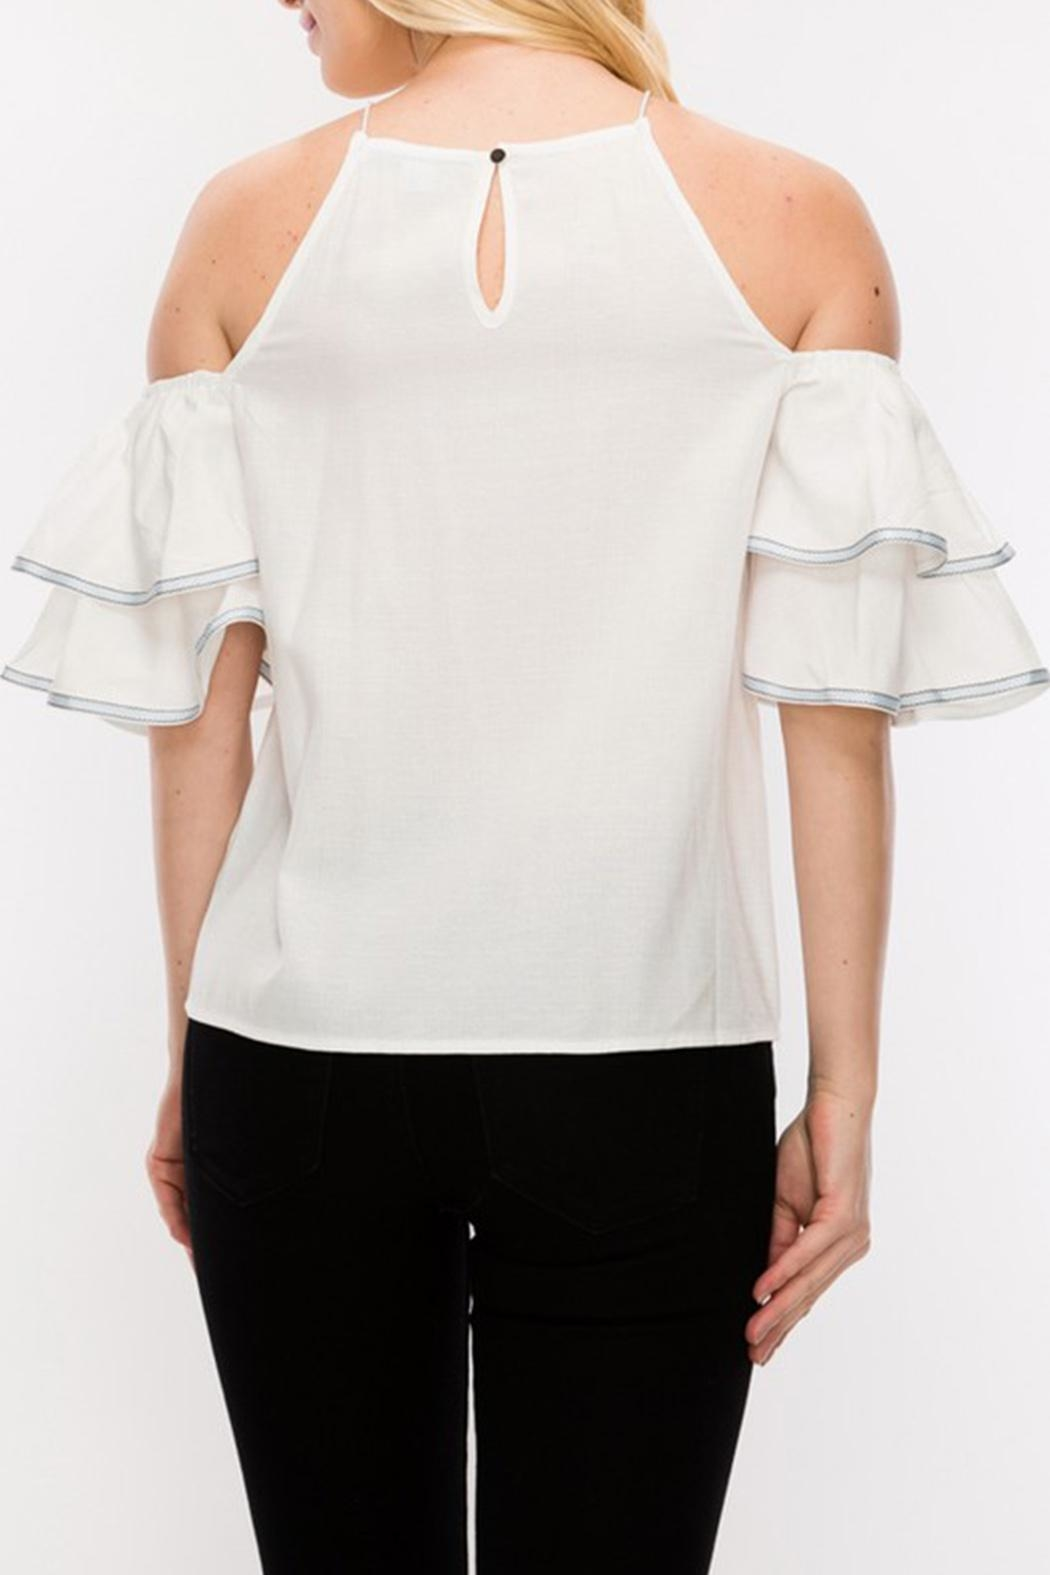 HYFVE Cold Shoulder Blouse - Side Cropped Image